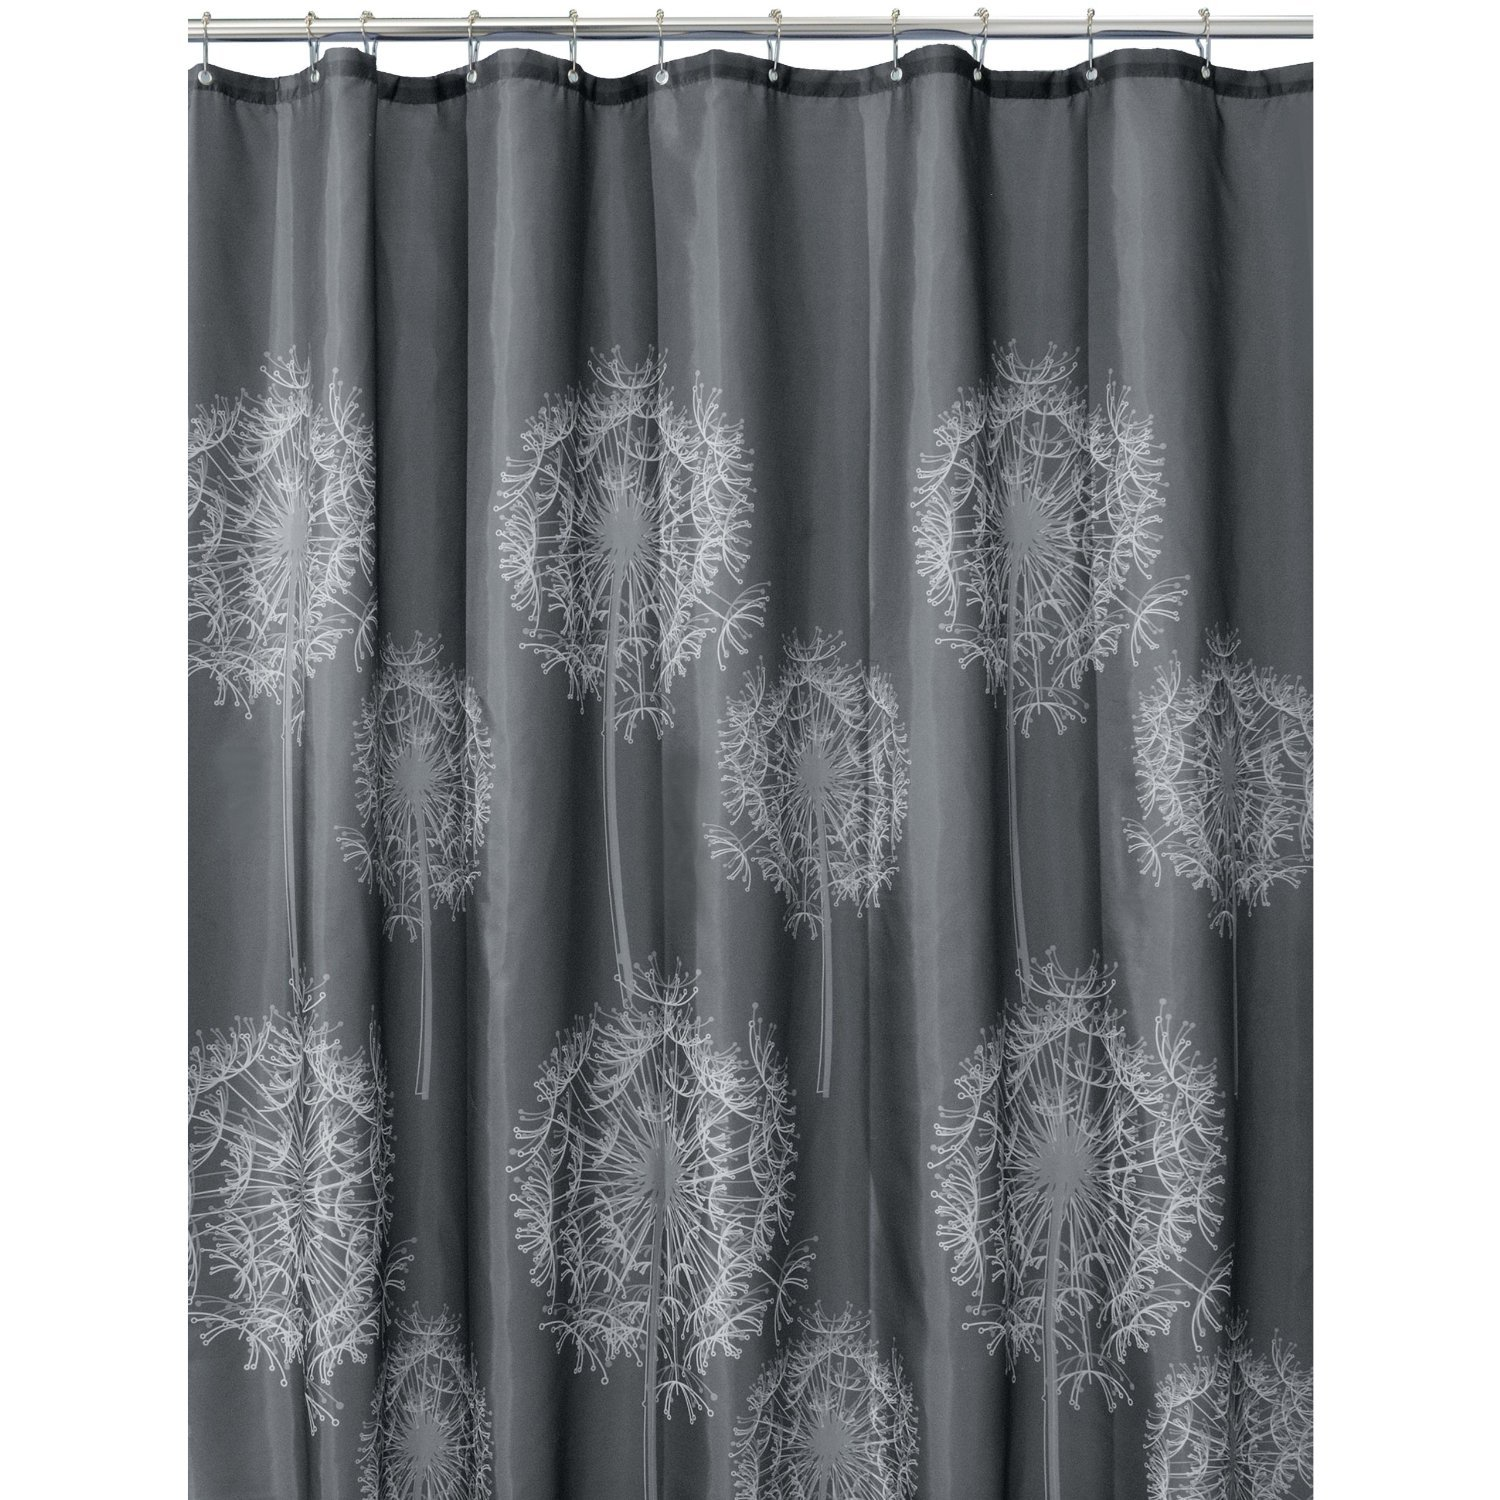 Amazon.com: InterDesign Dandelion Fabric Shower Curtain, 72 x 72, Charcoal:  Home & Kitchen - Amazon.com: InterDesign Dandelion Fabric Shower Curtain, 72 X 72